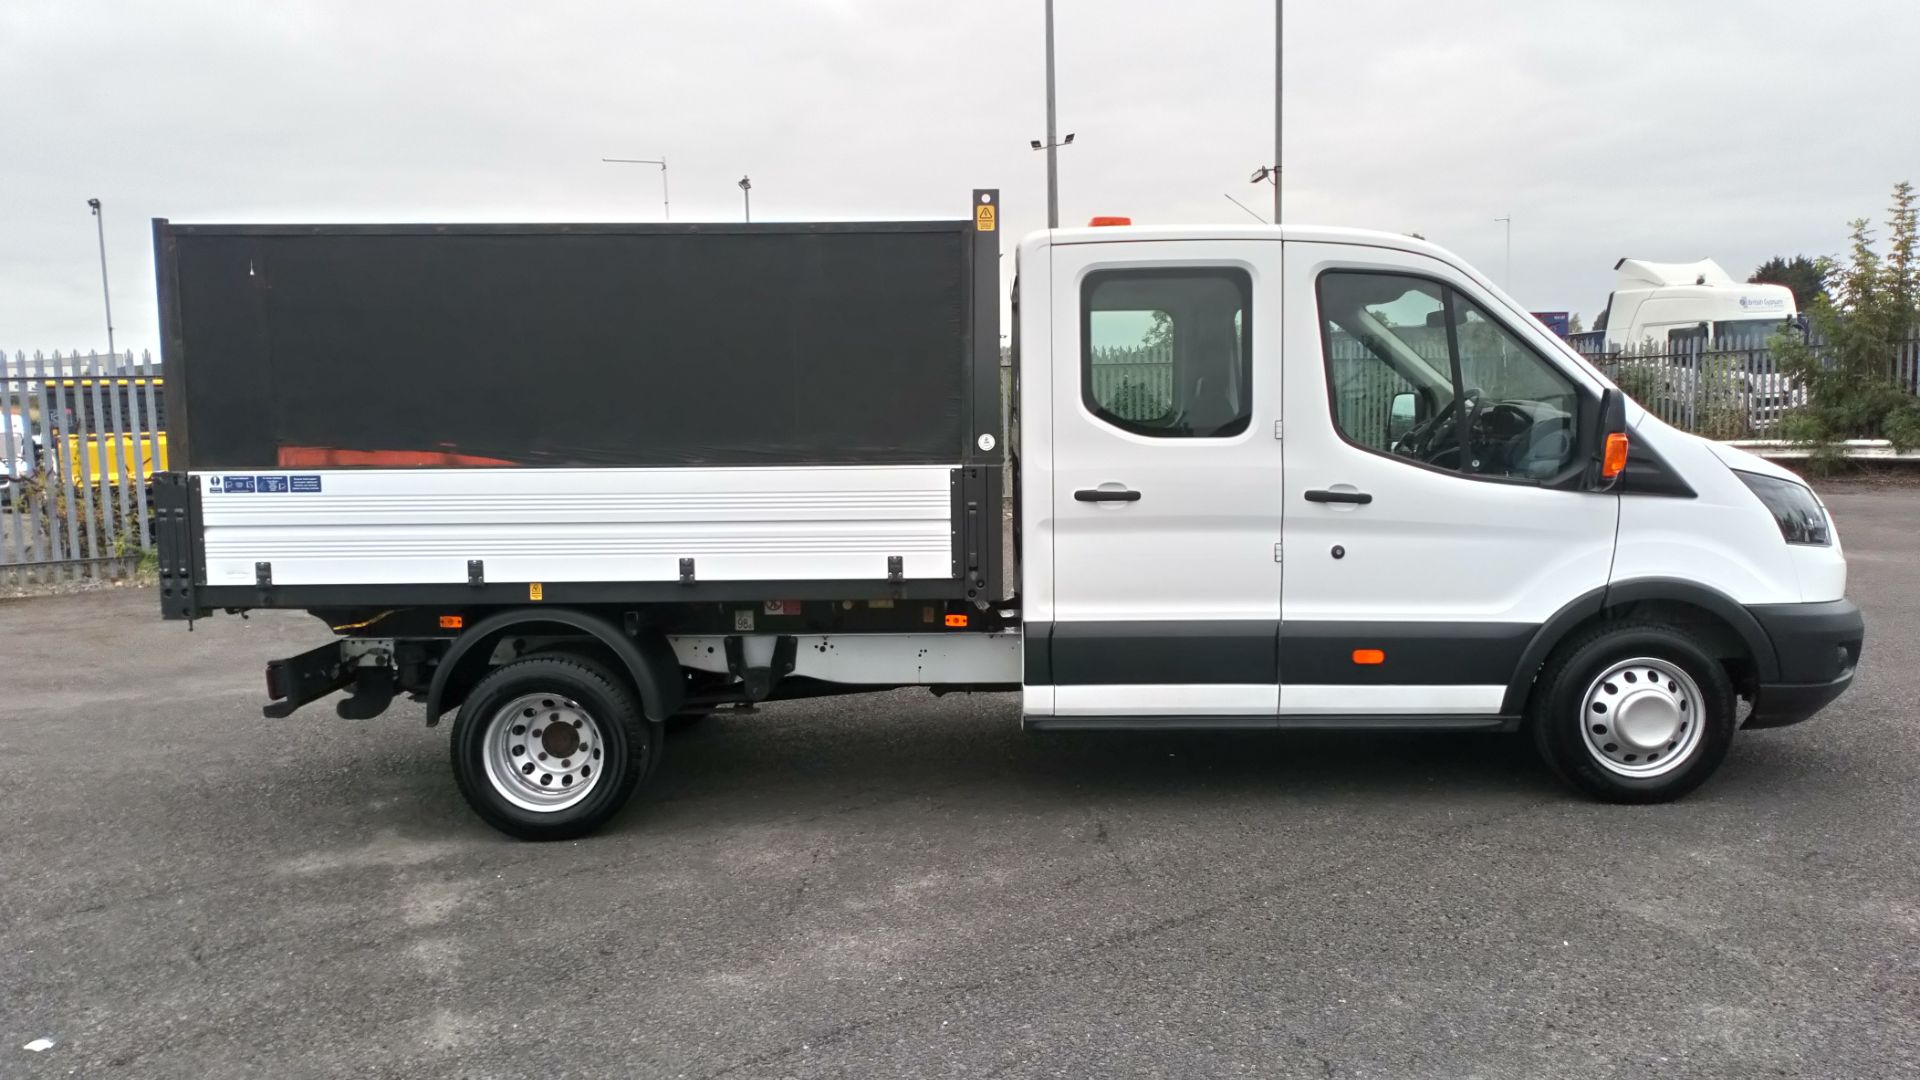 2018 Ford Transit 2.0 Tdci 130Ps H2 Double Cab Tipper (BL18UYX) Image 8